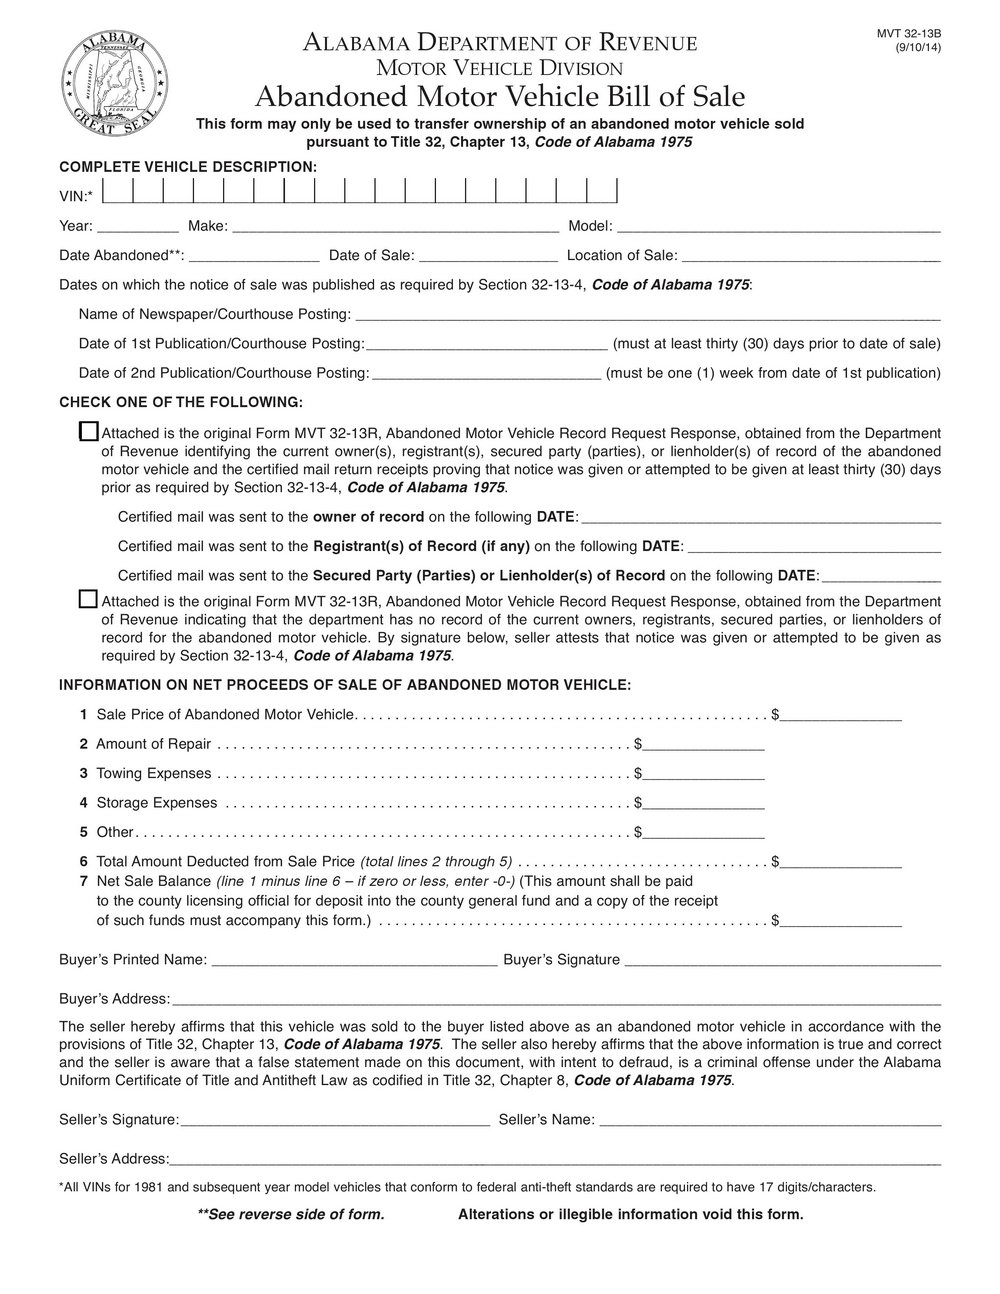 Indiana State Form St 105